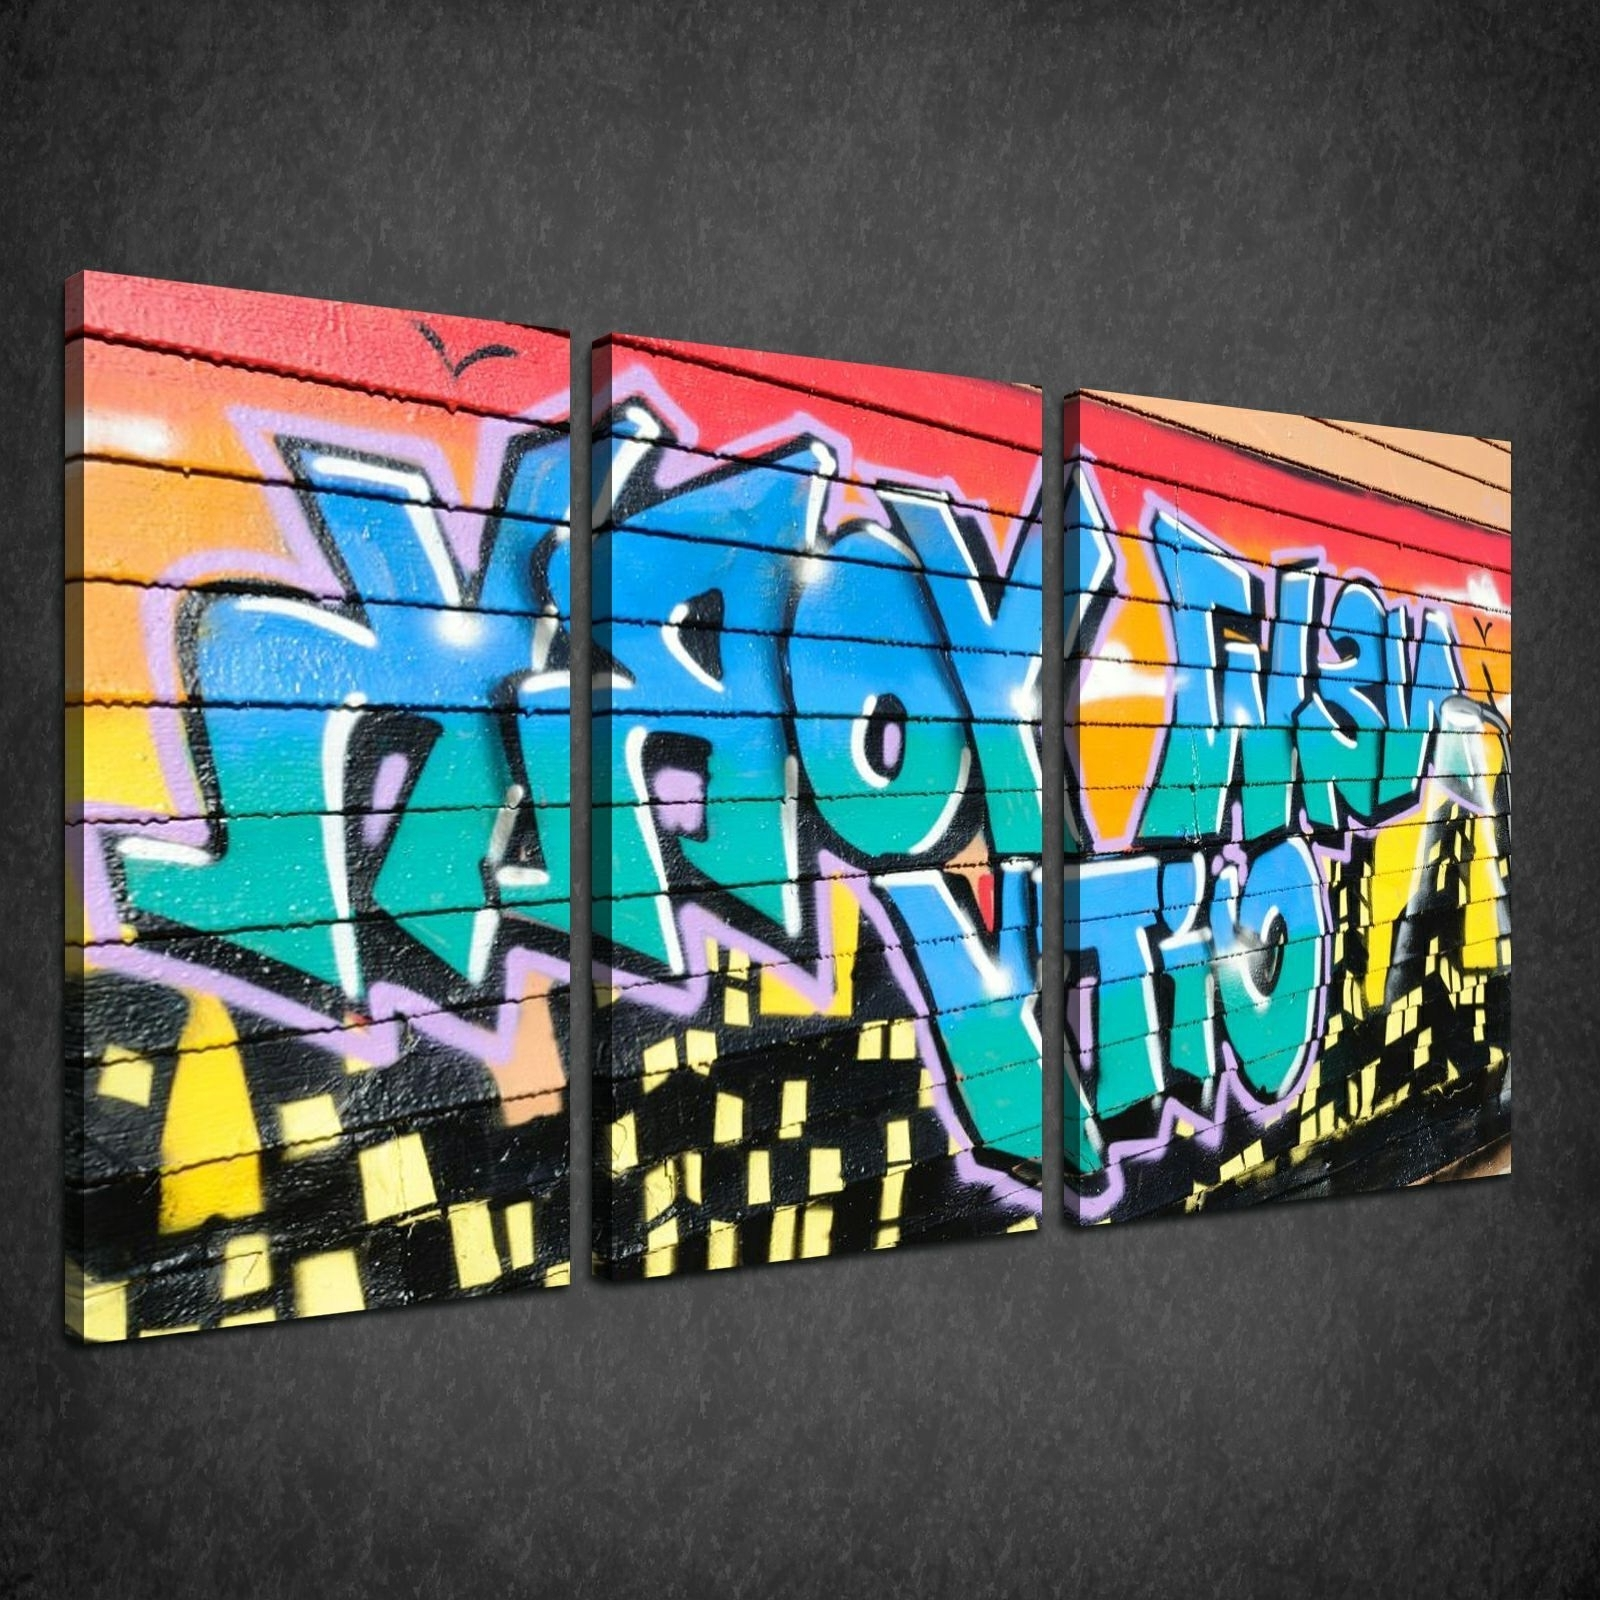 Graffiti Canvas Wall Art Inside Most Recent Canvas Print Pictures. High Quality, Handmade, Free Next Day Delivery. (Gallery 5 of 15)